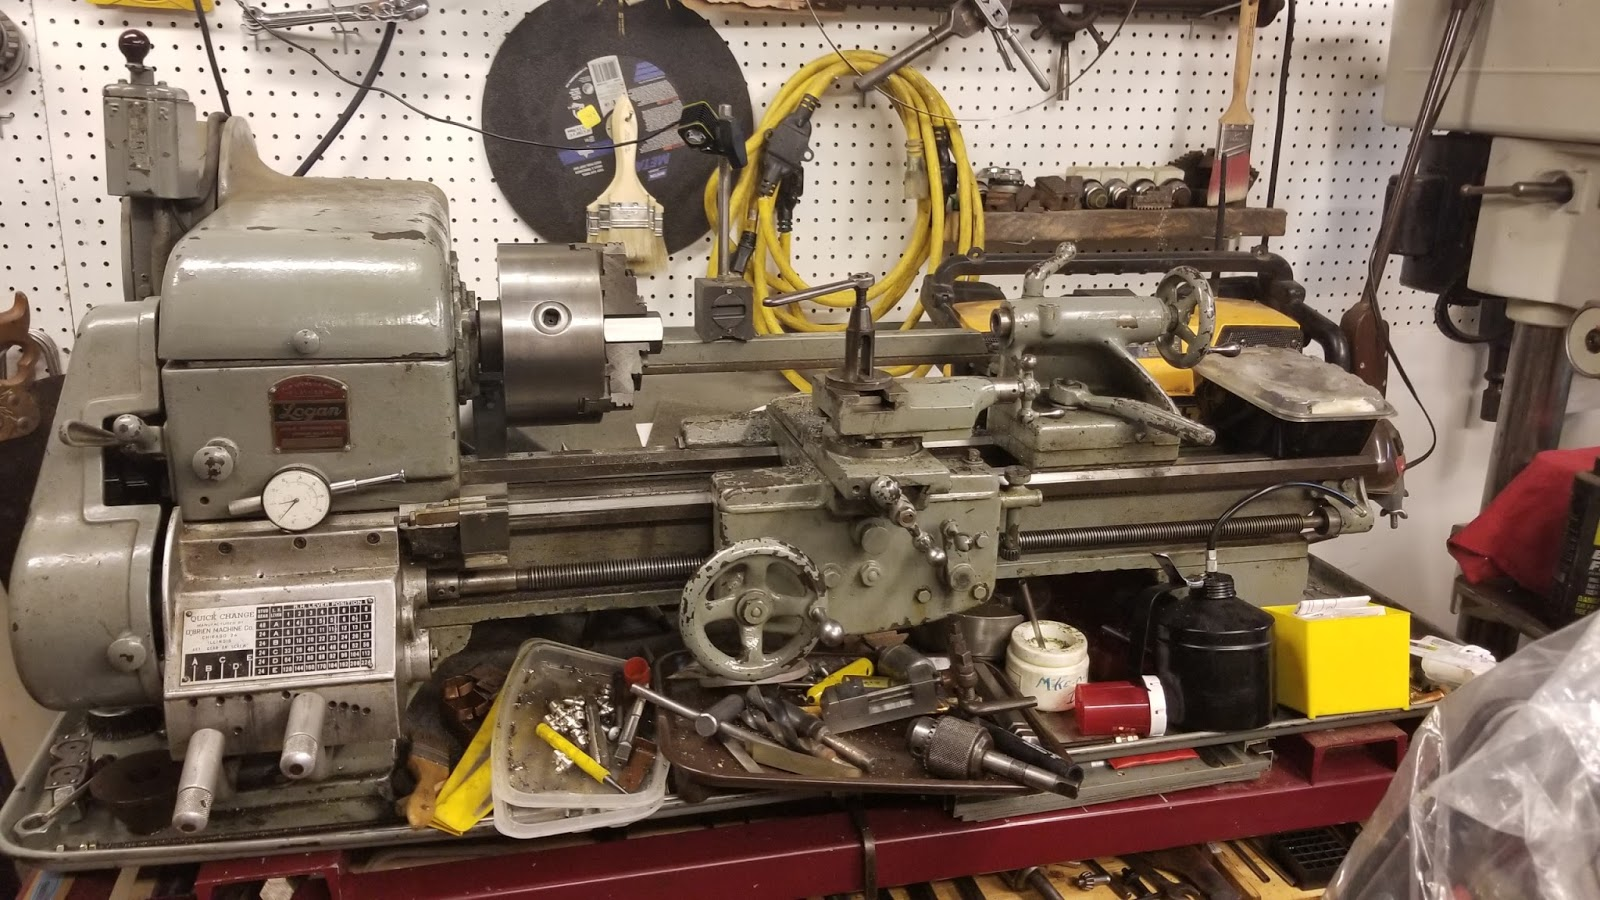 Budget Machining Logan Lathe Wiring Diagram Still Makes Parts Or Has You Can Find Them Here Http Loganactcom